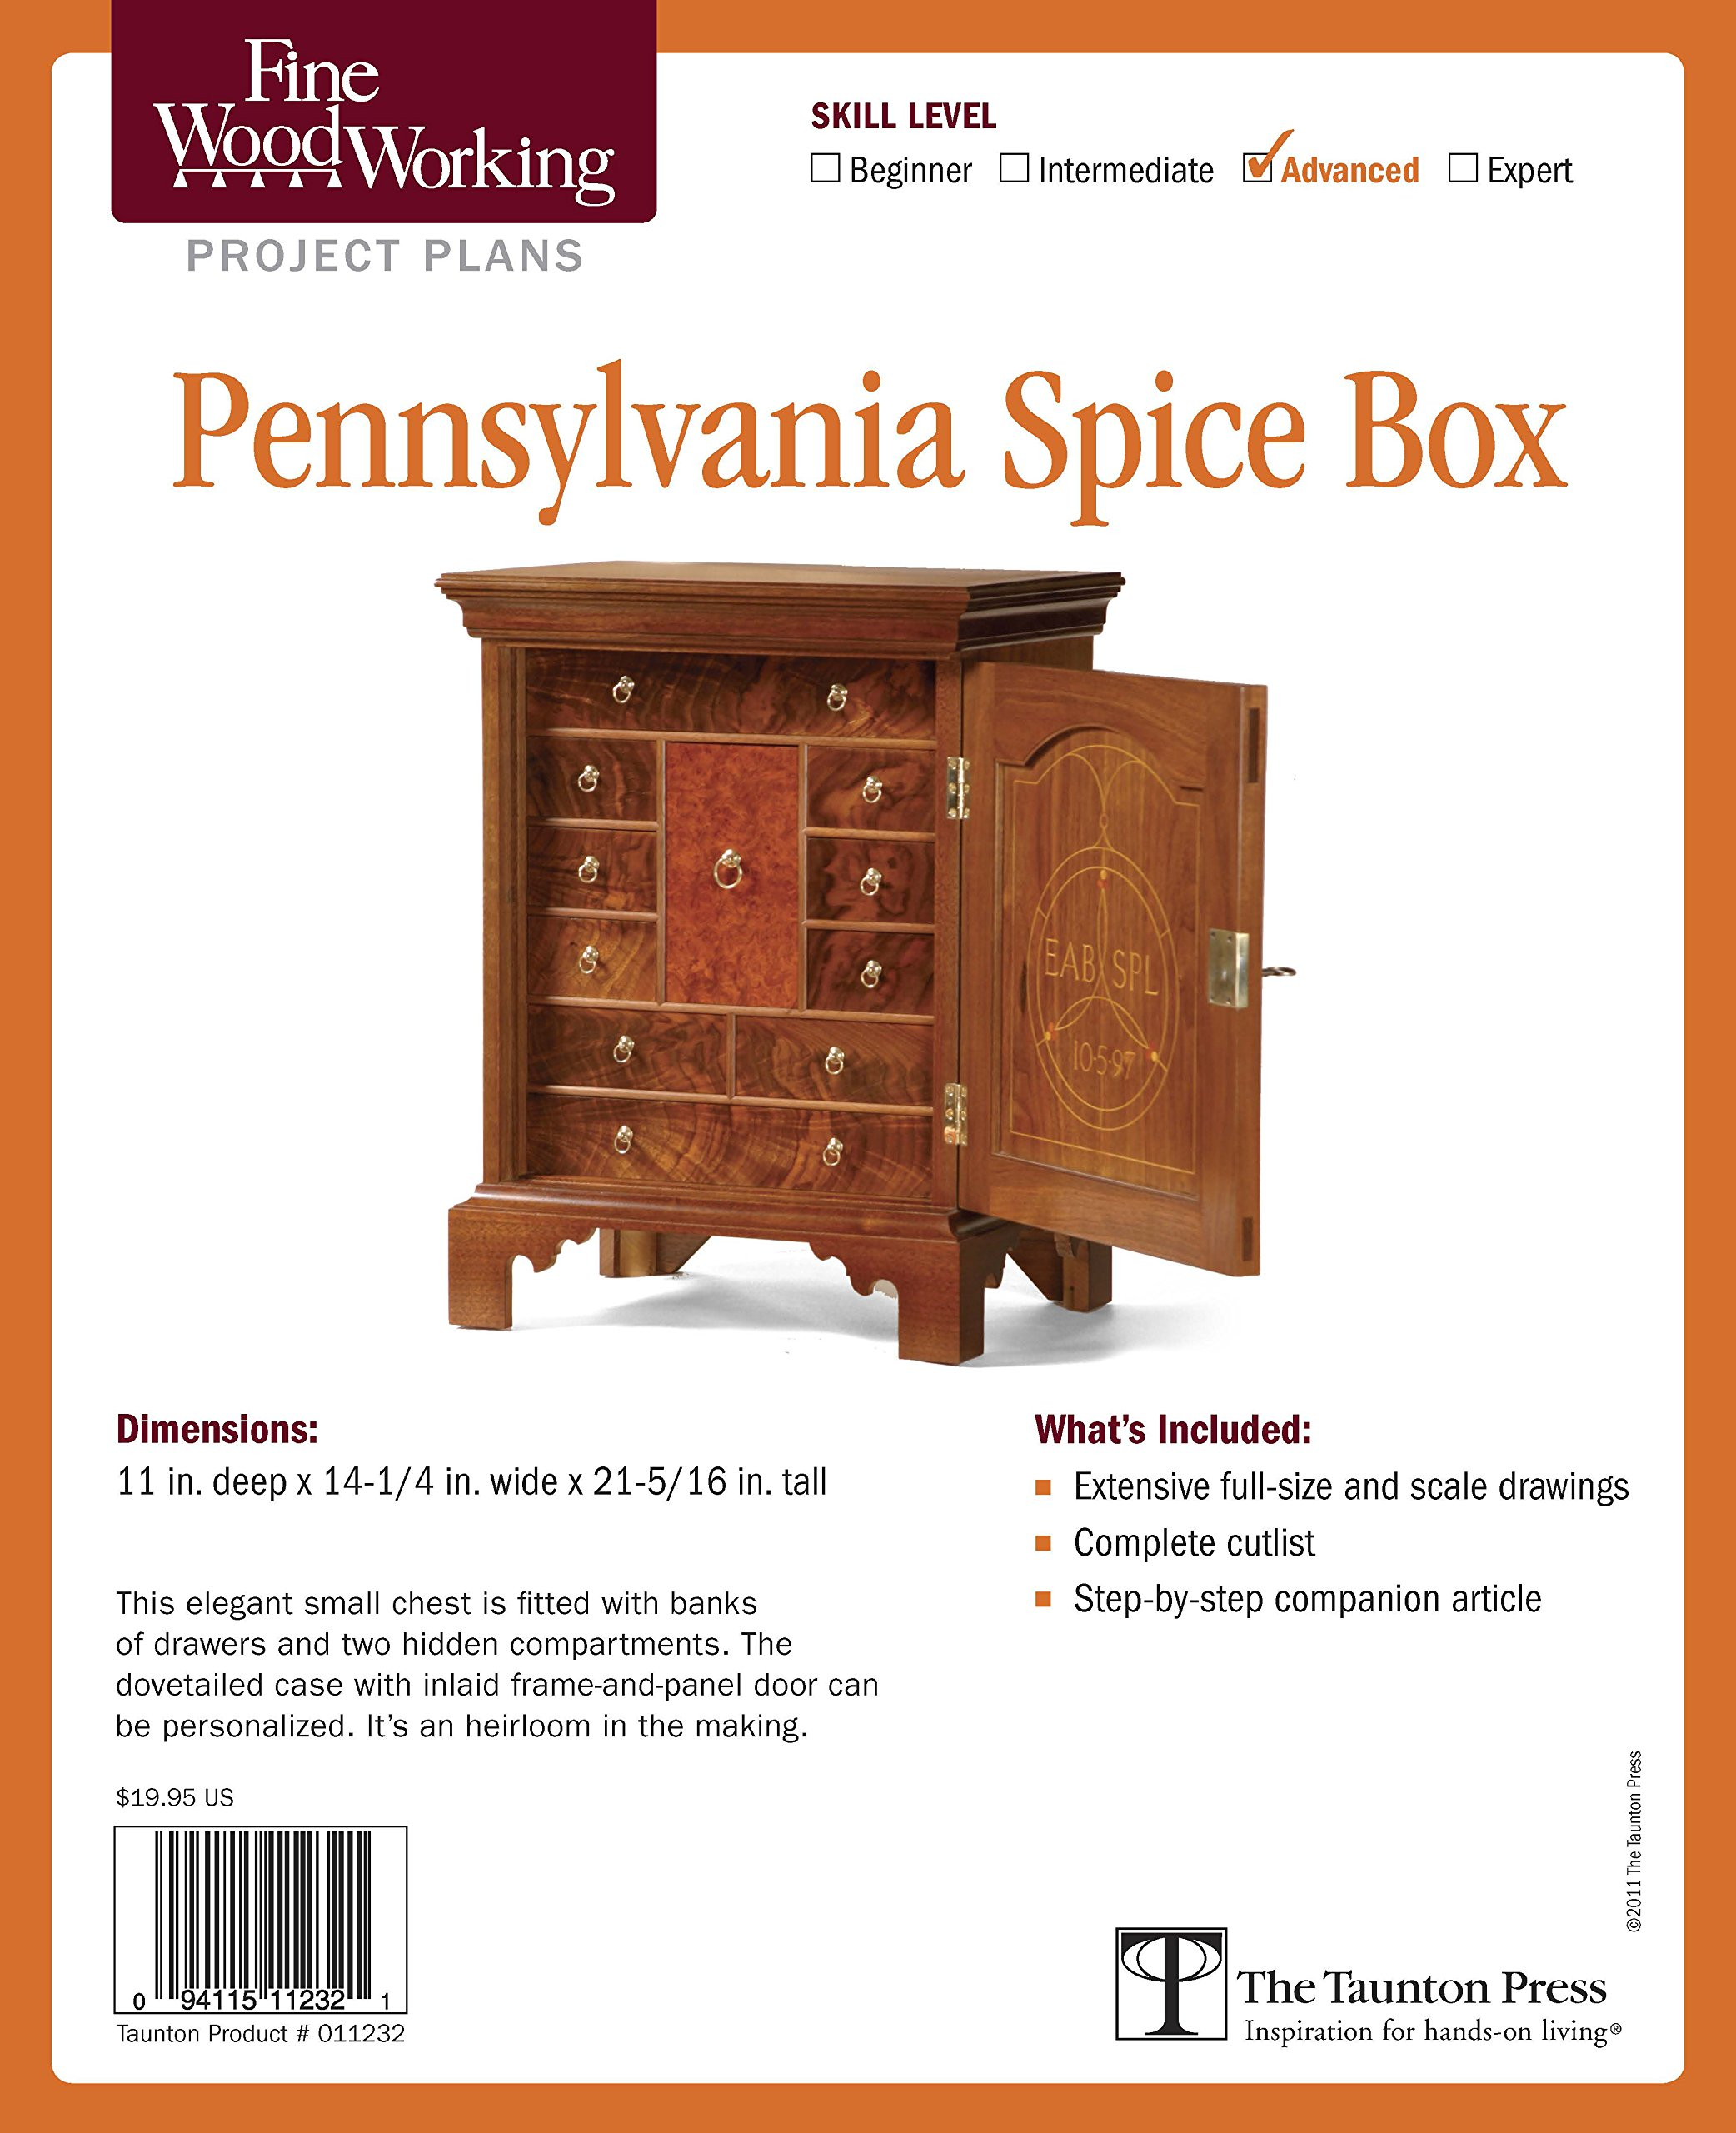 Fine Woodworking's Pennsylvania Spice Box Plan (Fine Woodworking Project Plans)